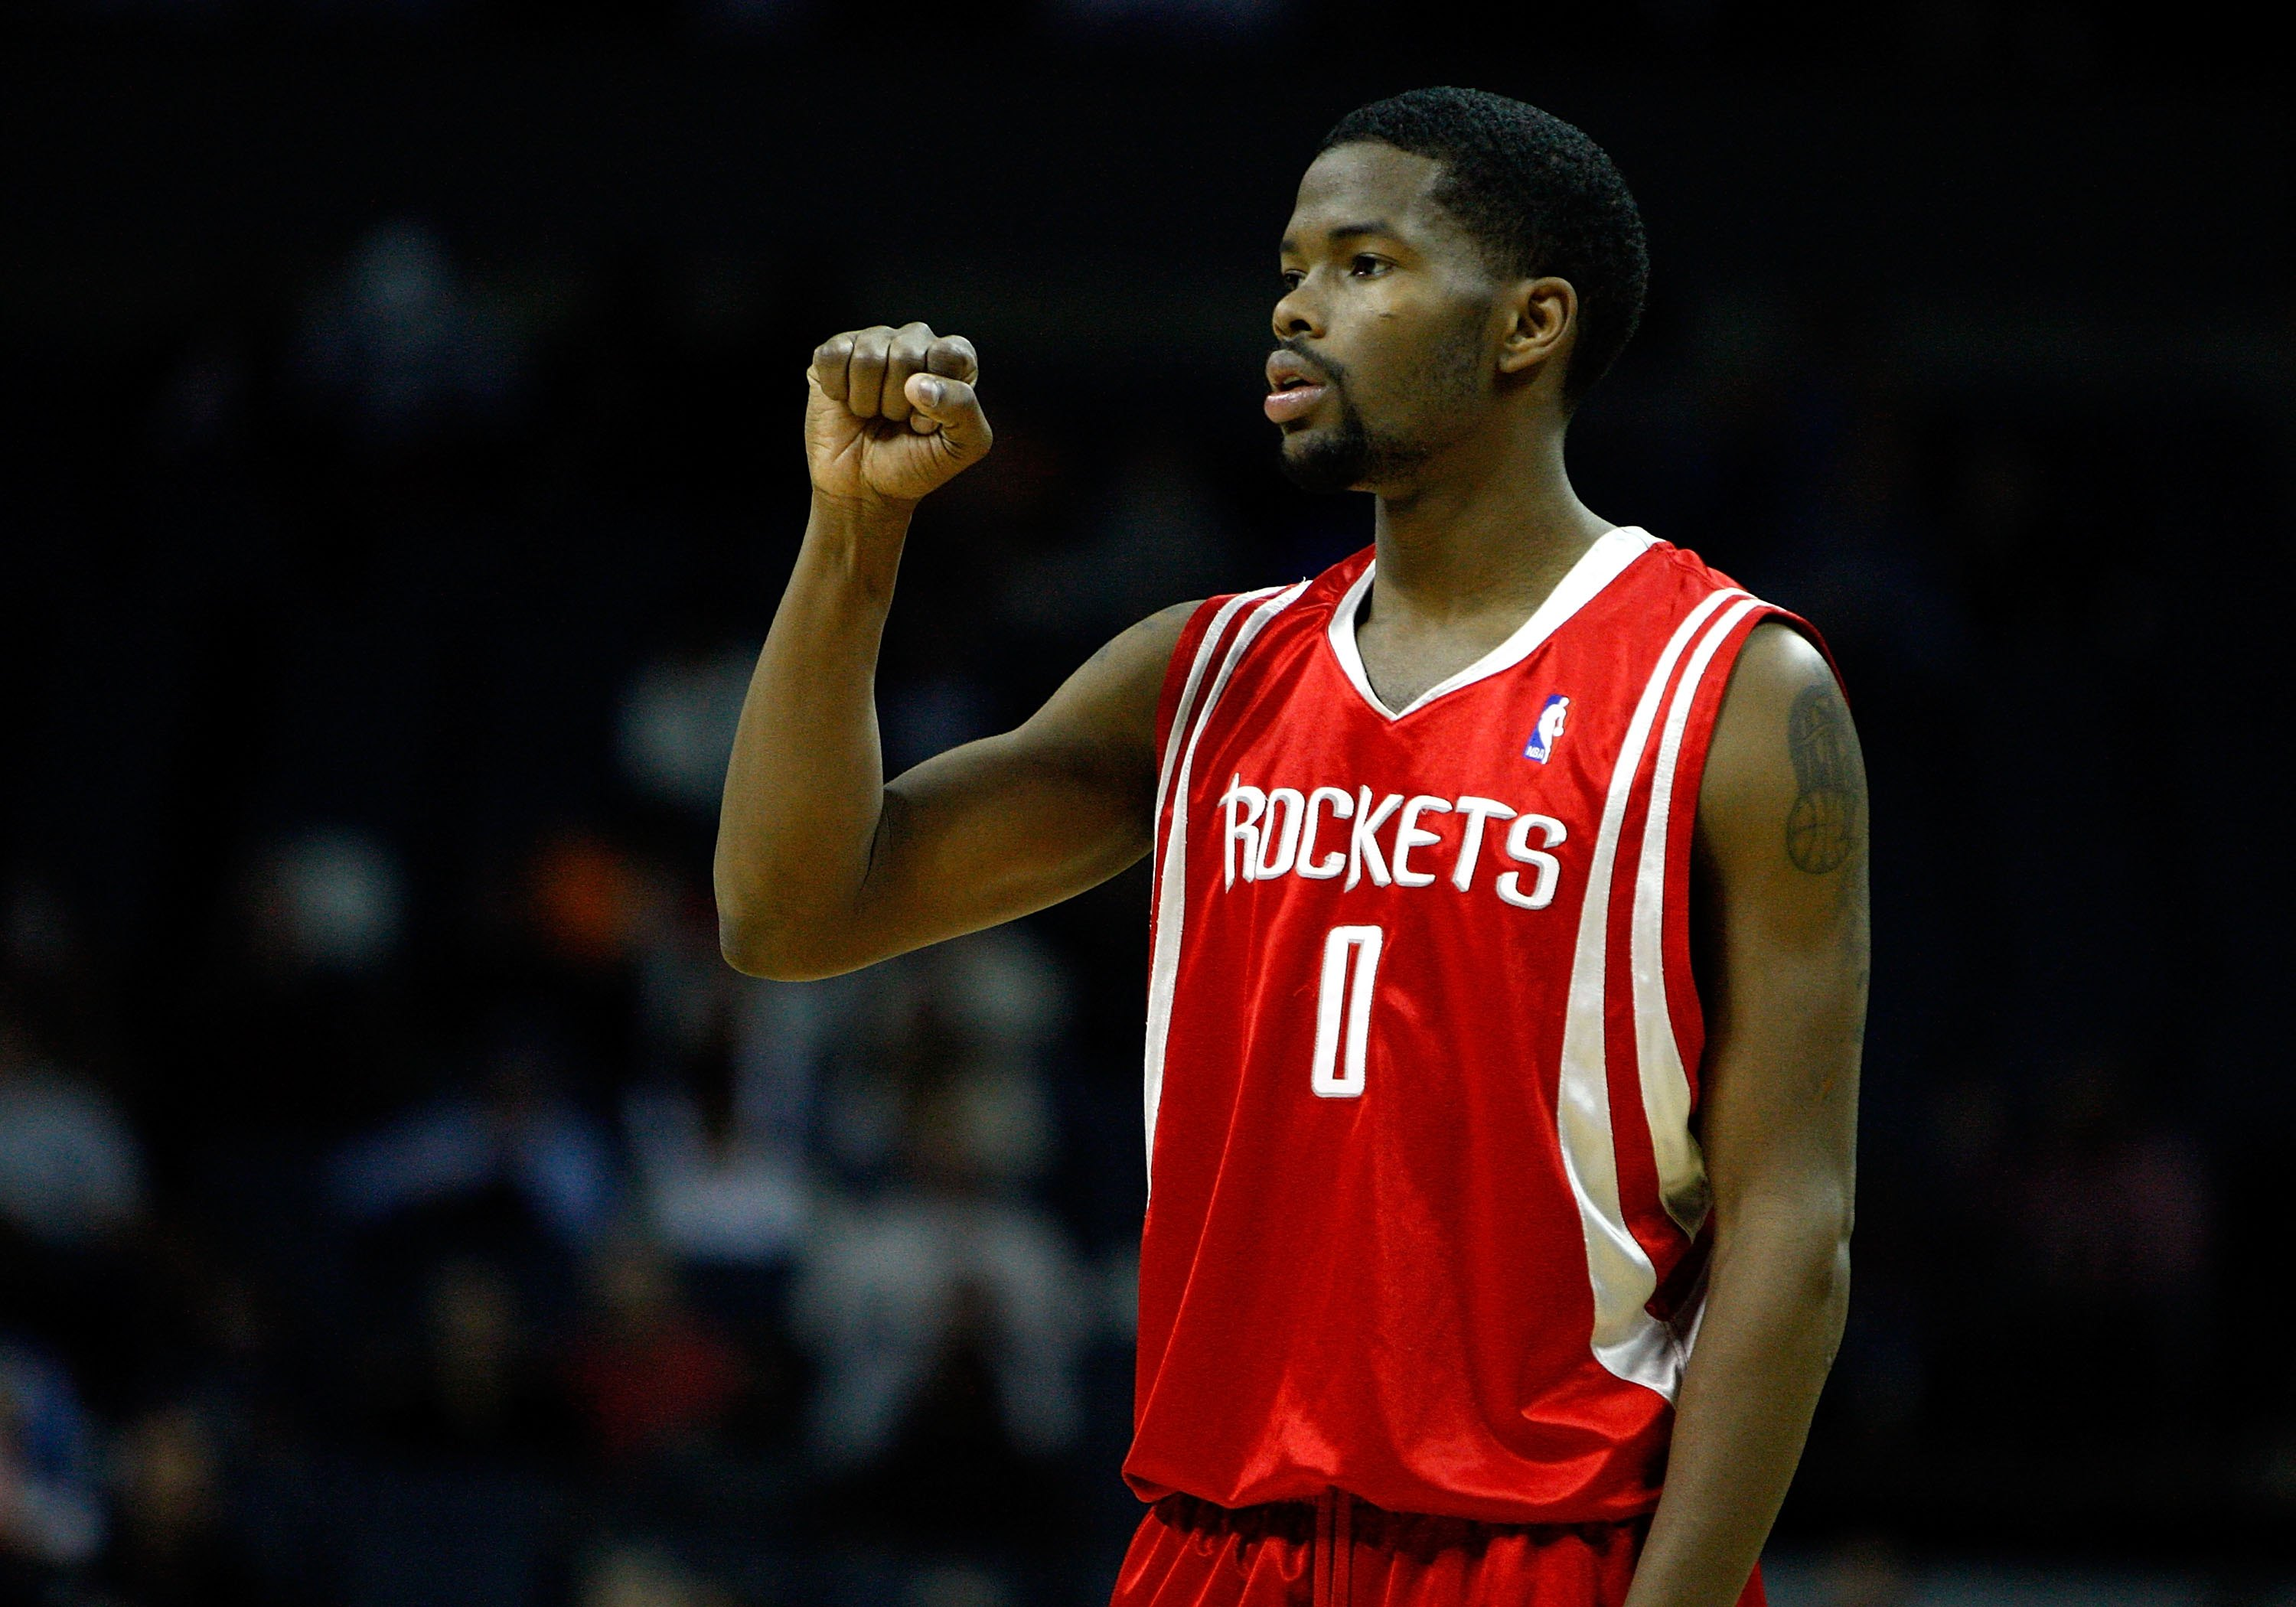 CHARLOTTE, NC - JANUARY 12:  Aaron Brooks #0 of the Houston Rockets reacts during the game against the Charlotte Bobcats on January 12, 2010 at Time Warner Cable Arena in Charlotte, North Carolina.  The Bobcats won 102-94.  NOTE TO USER: User expressly ac